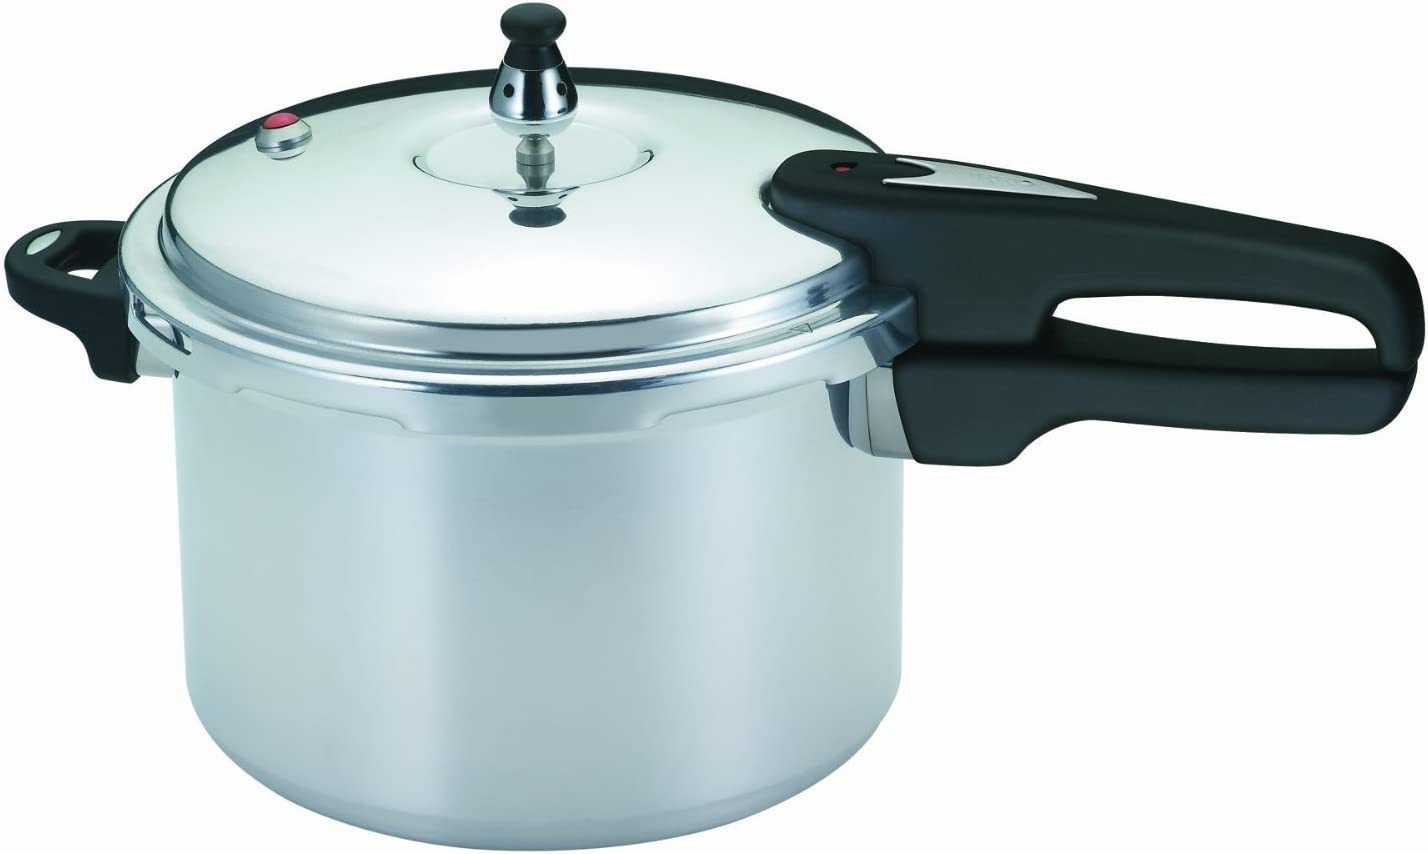 Mirro 92160A Polished Aluminum 10-PSI Pressure Cooker Cookware, 6-Quart, Silver - 7114000230